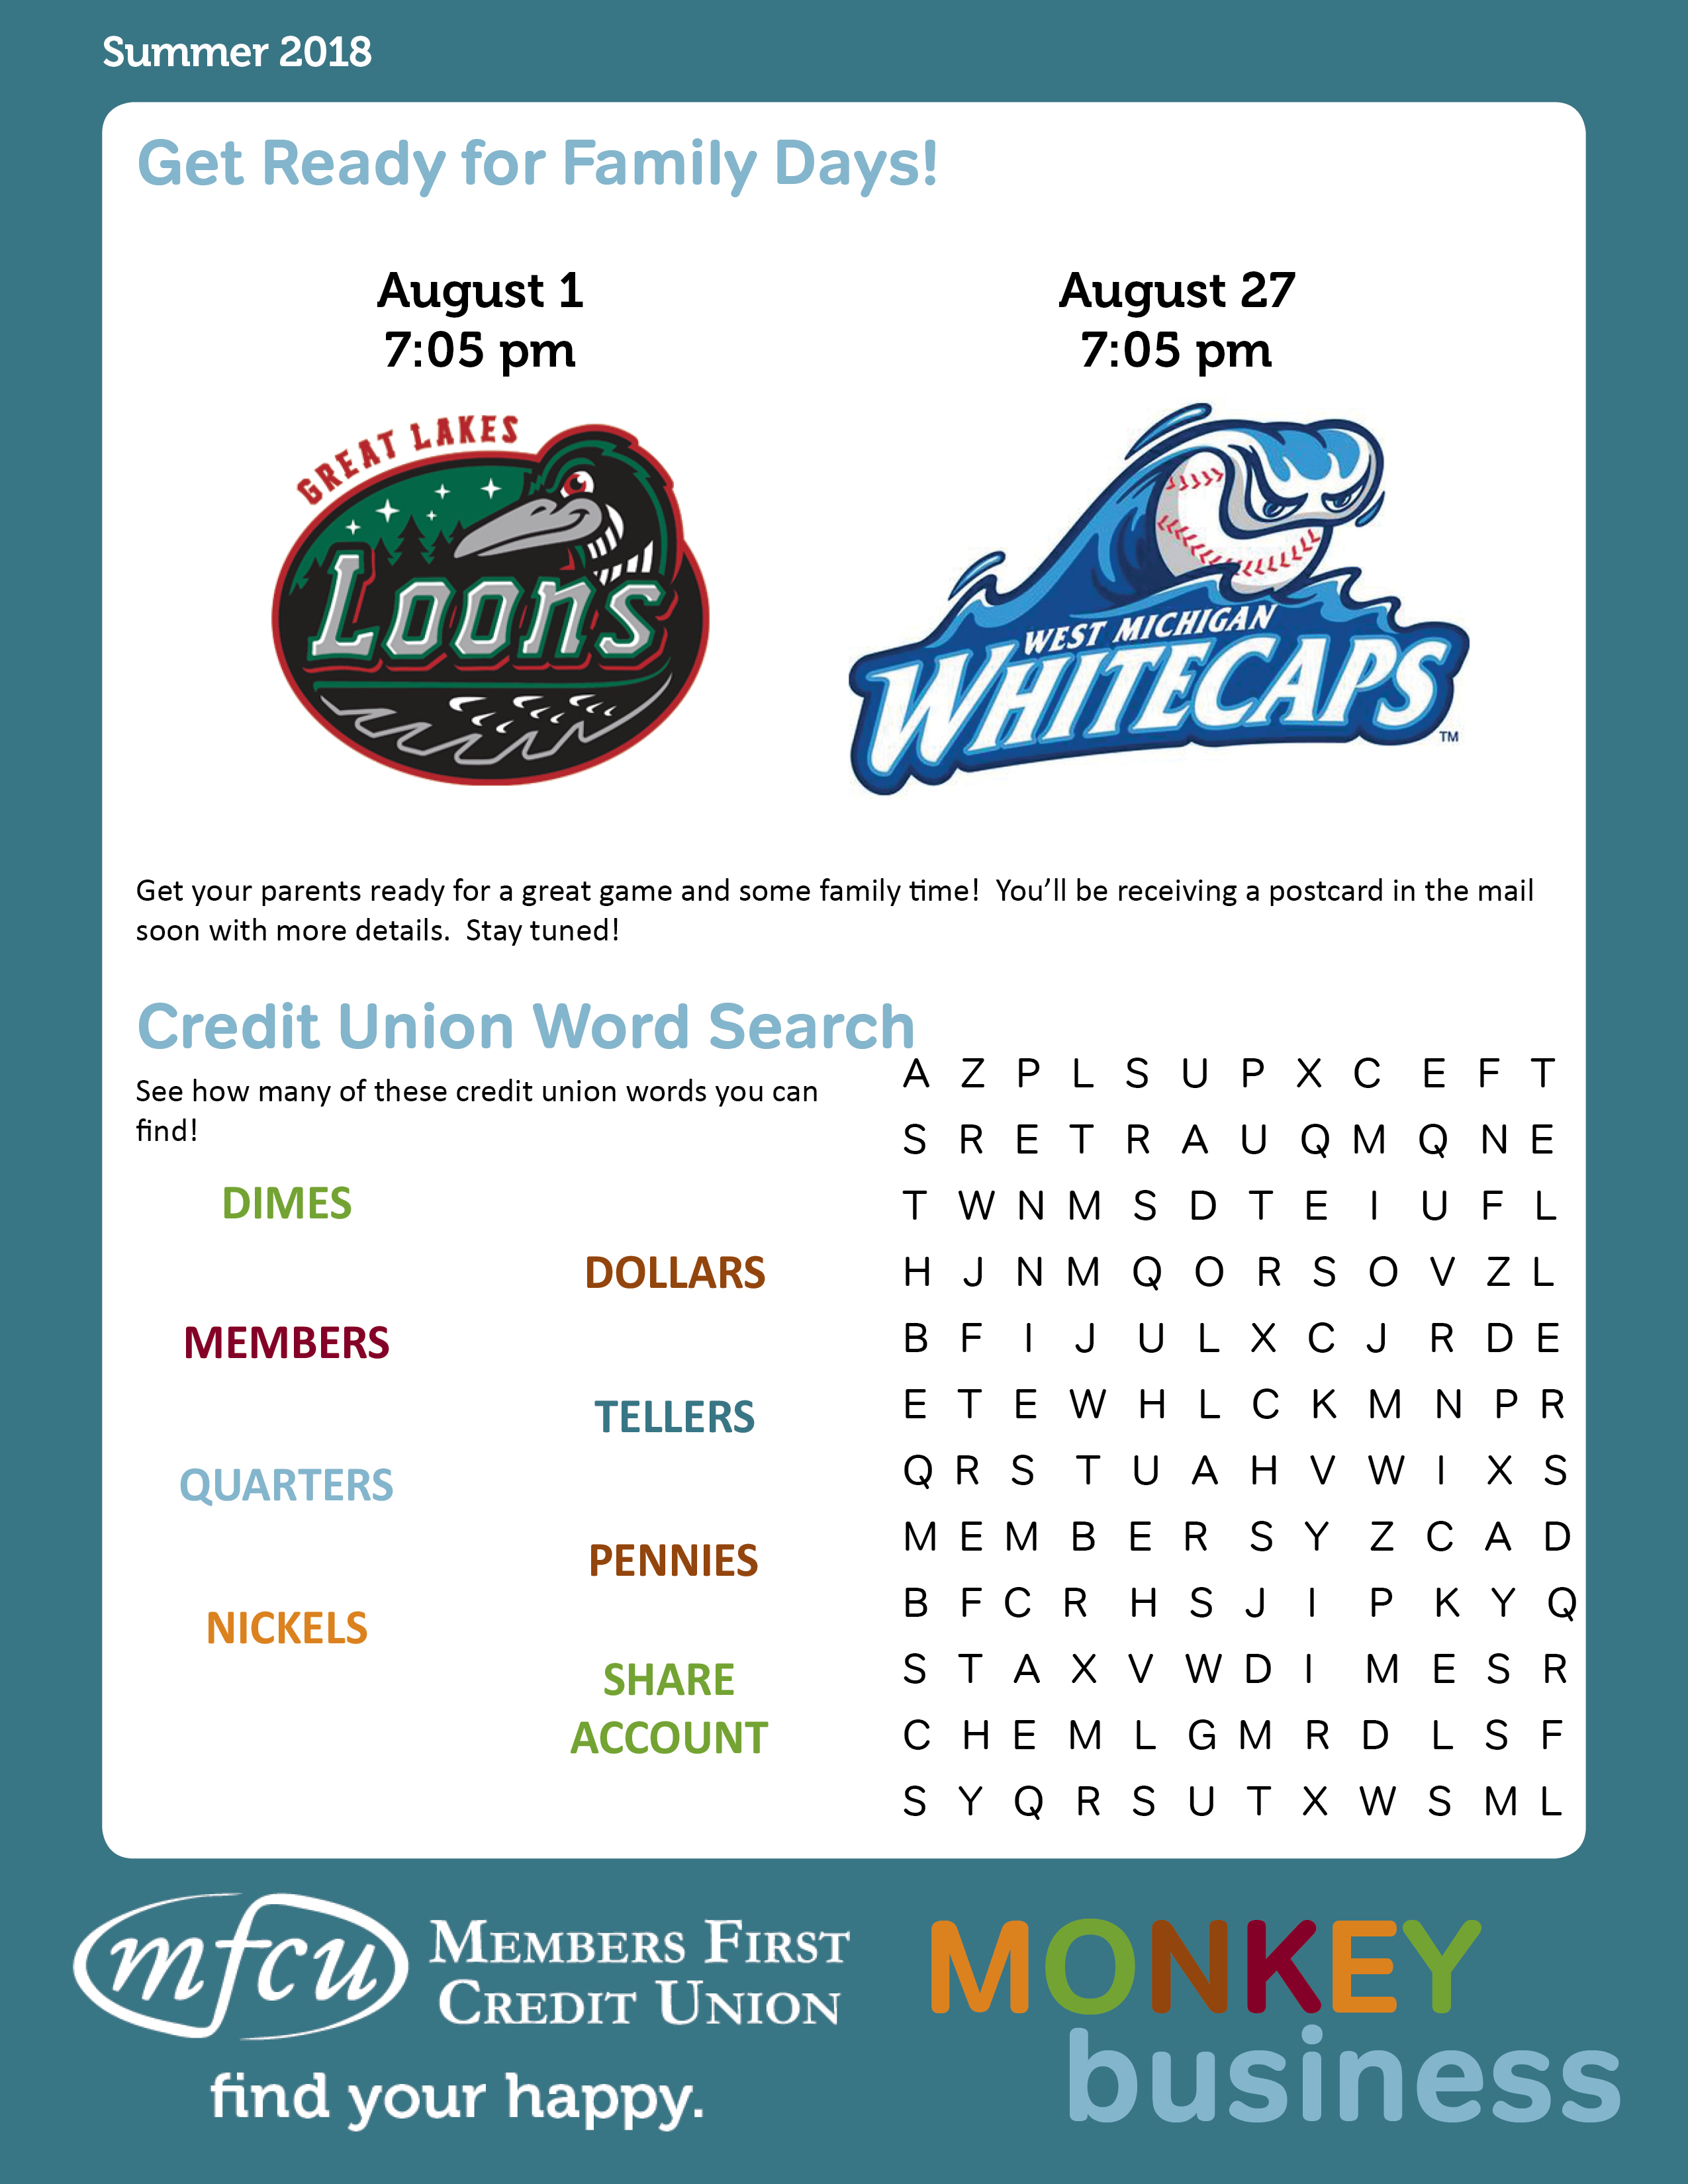 newsletter members first credit union